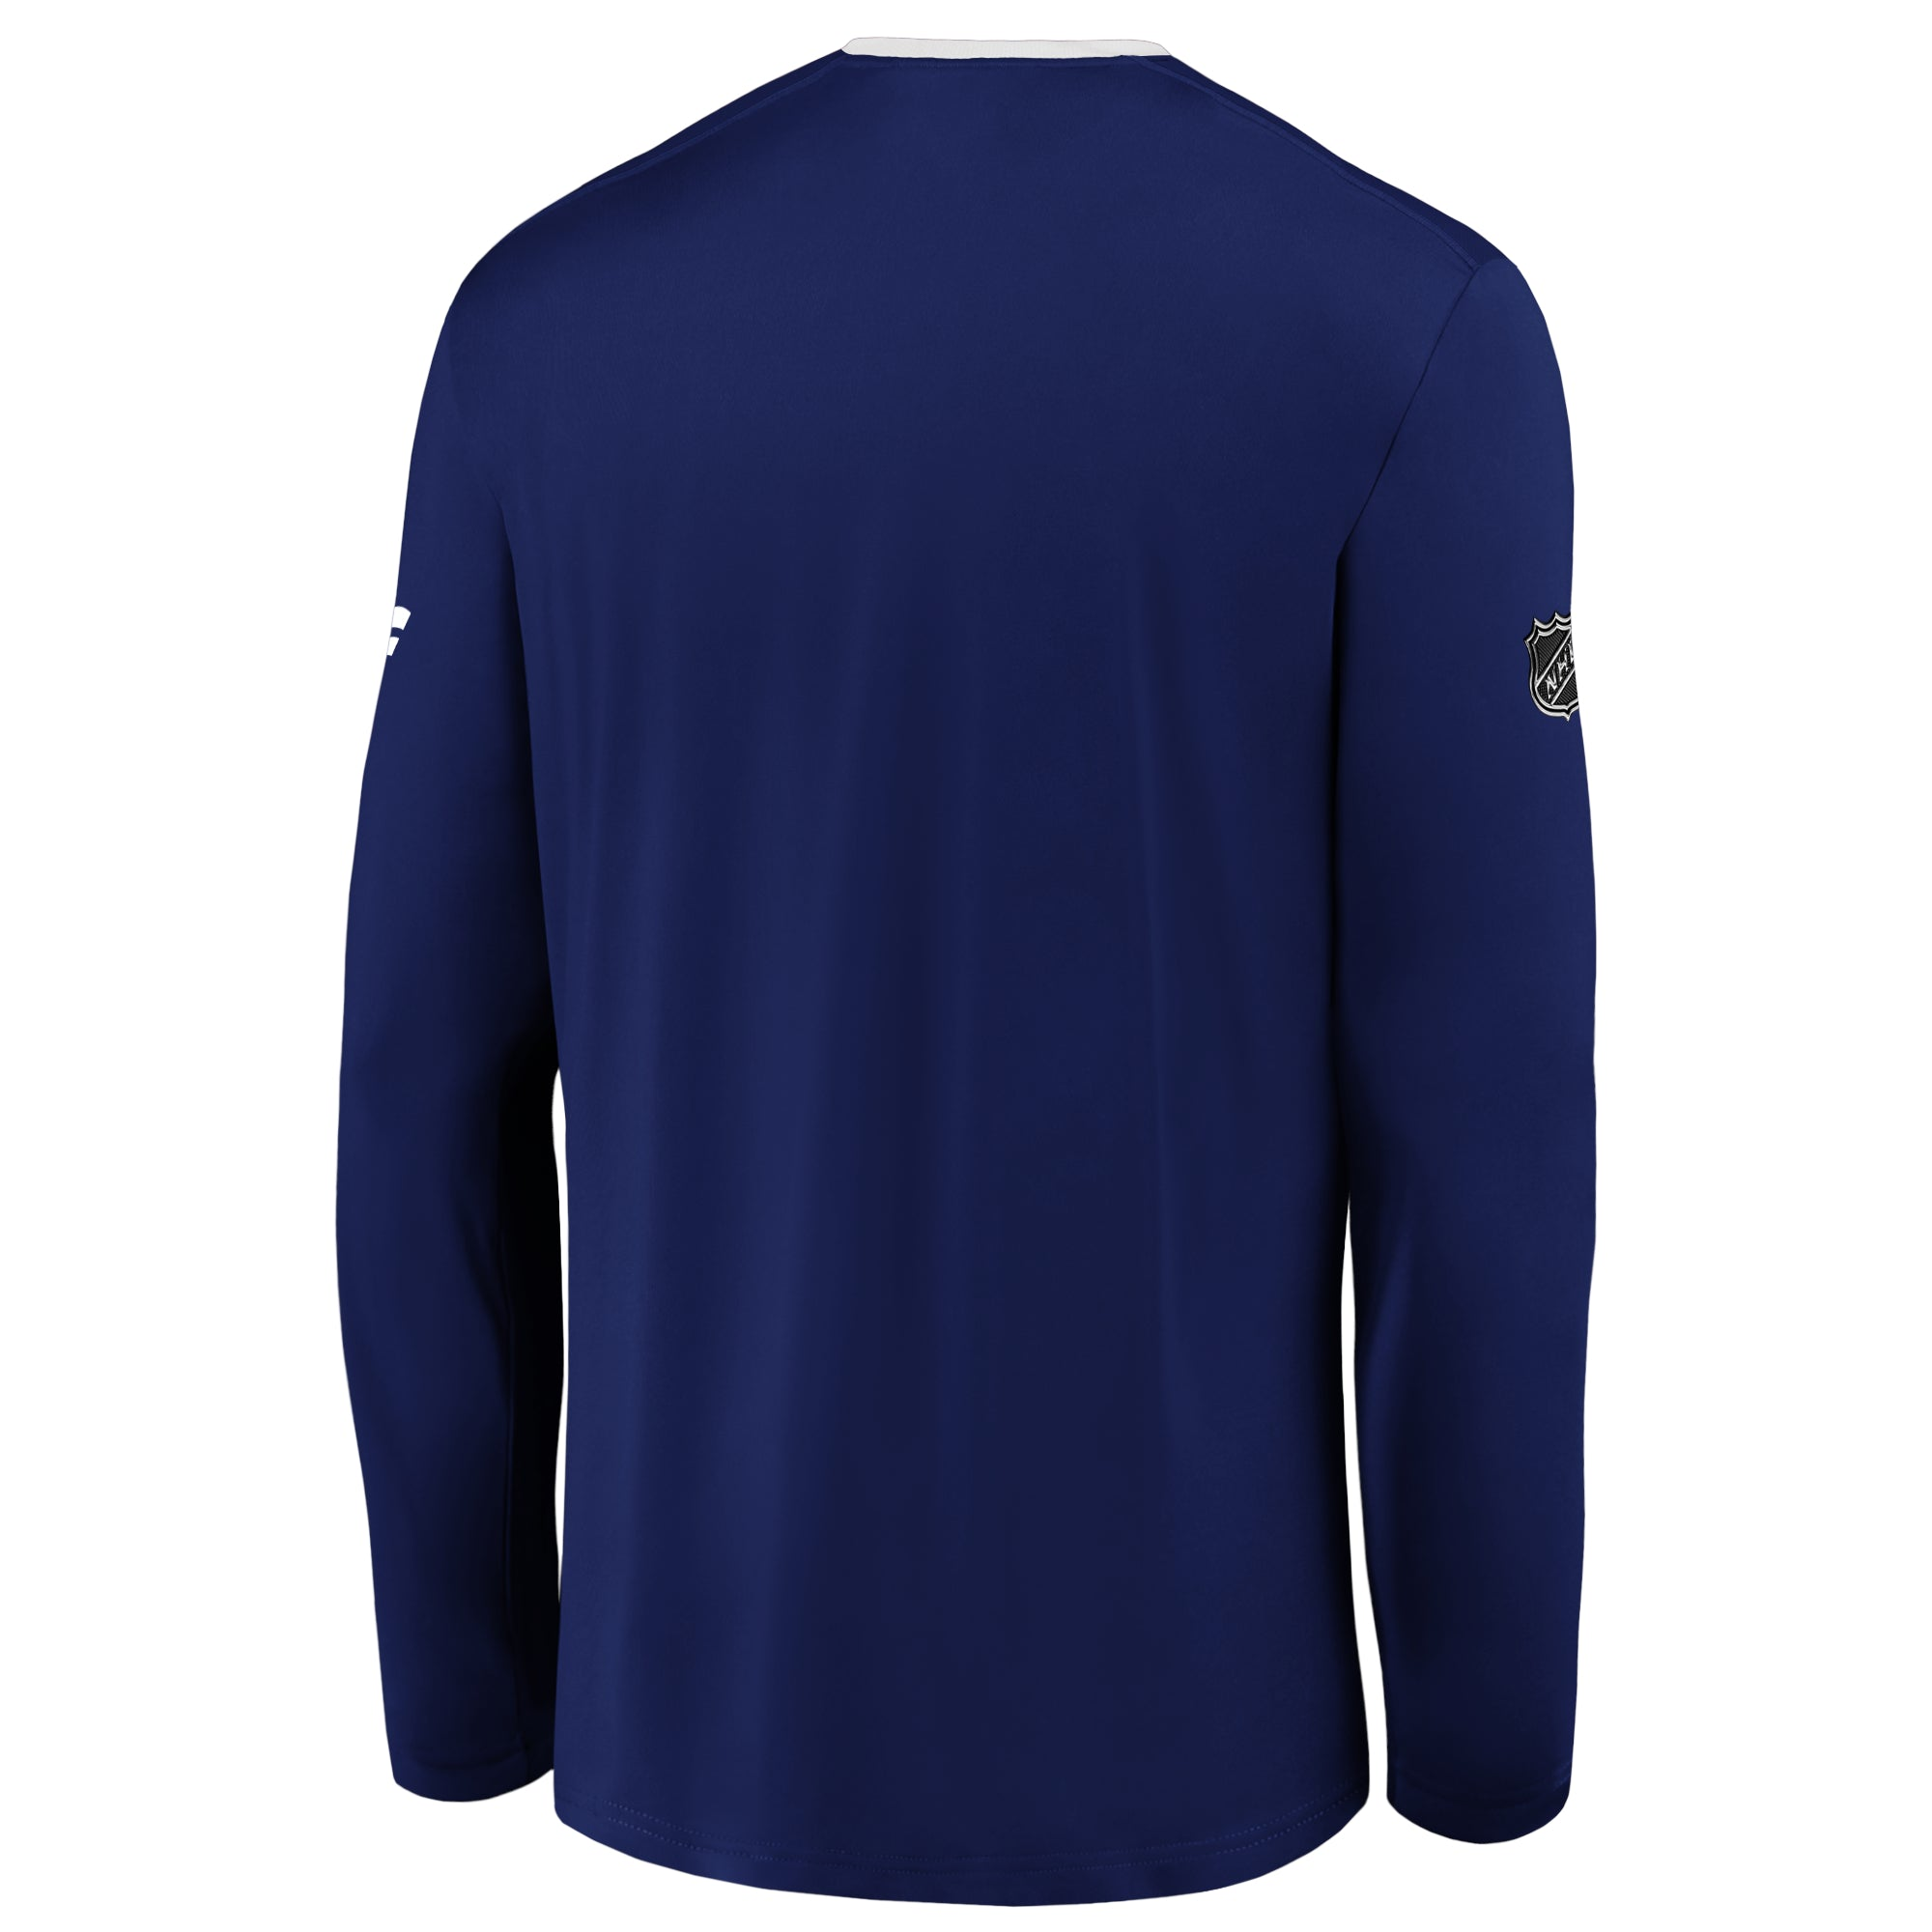 Maple Leafs Men's Authentic Performance Long Sleeve